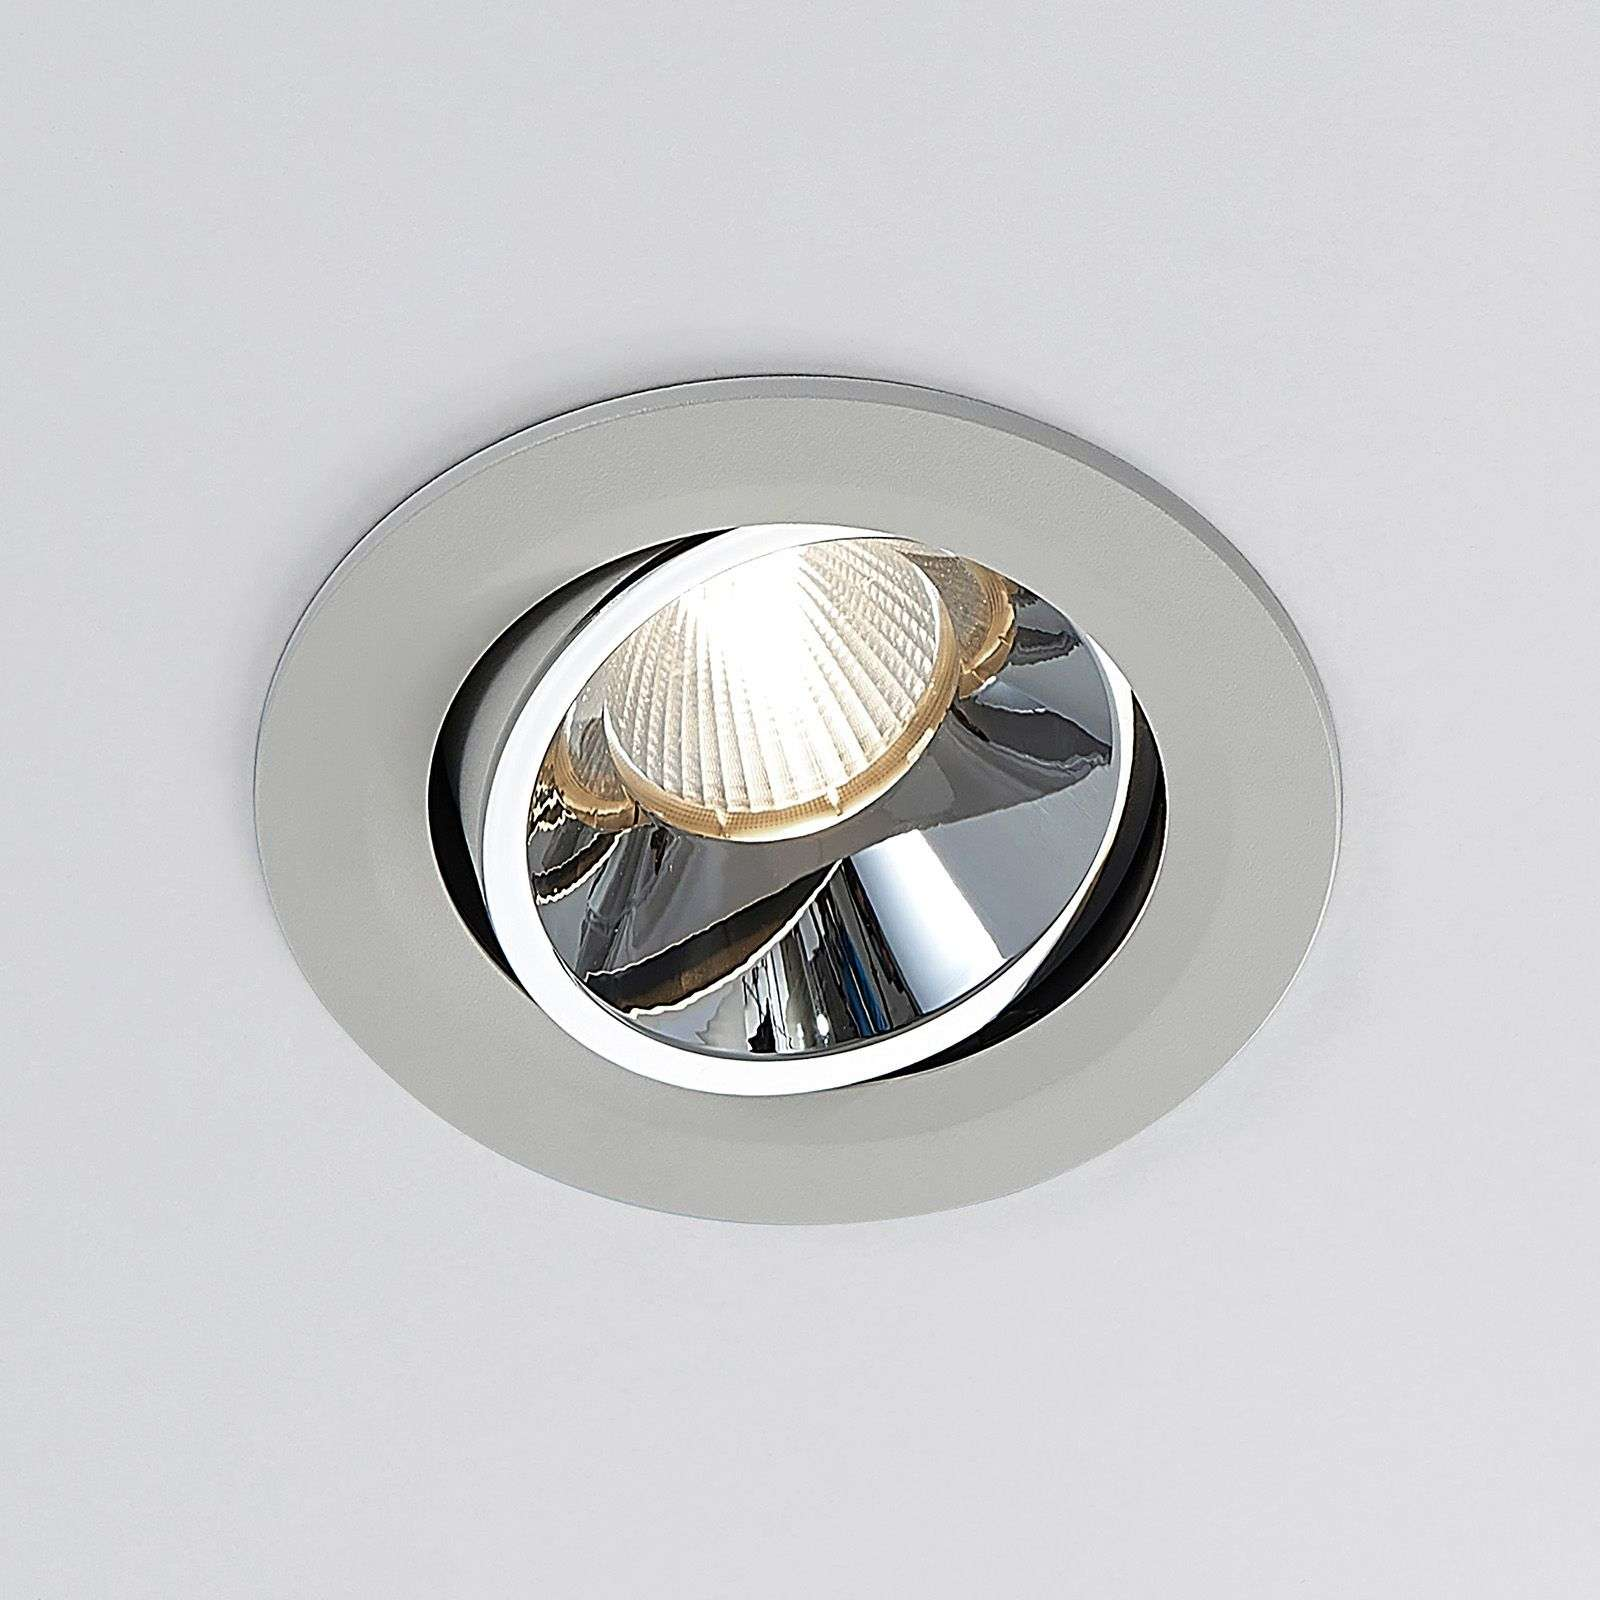 Arcchio Franjo LED downlight, 20-40° 12,6W 3.000K